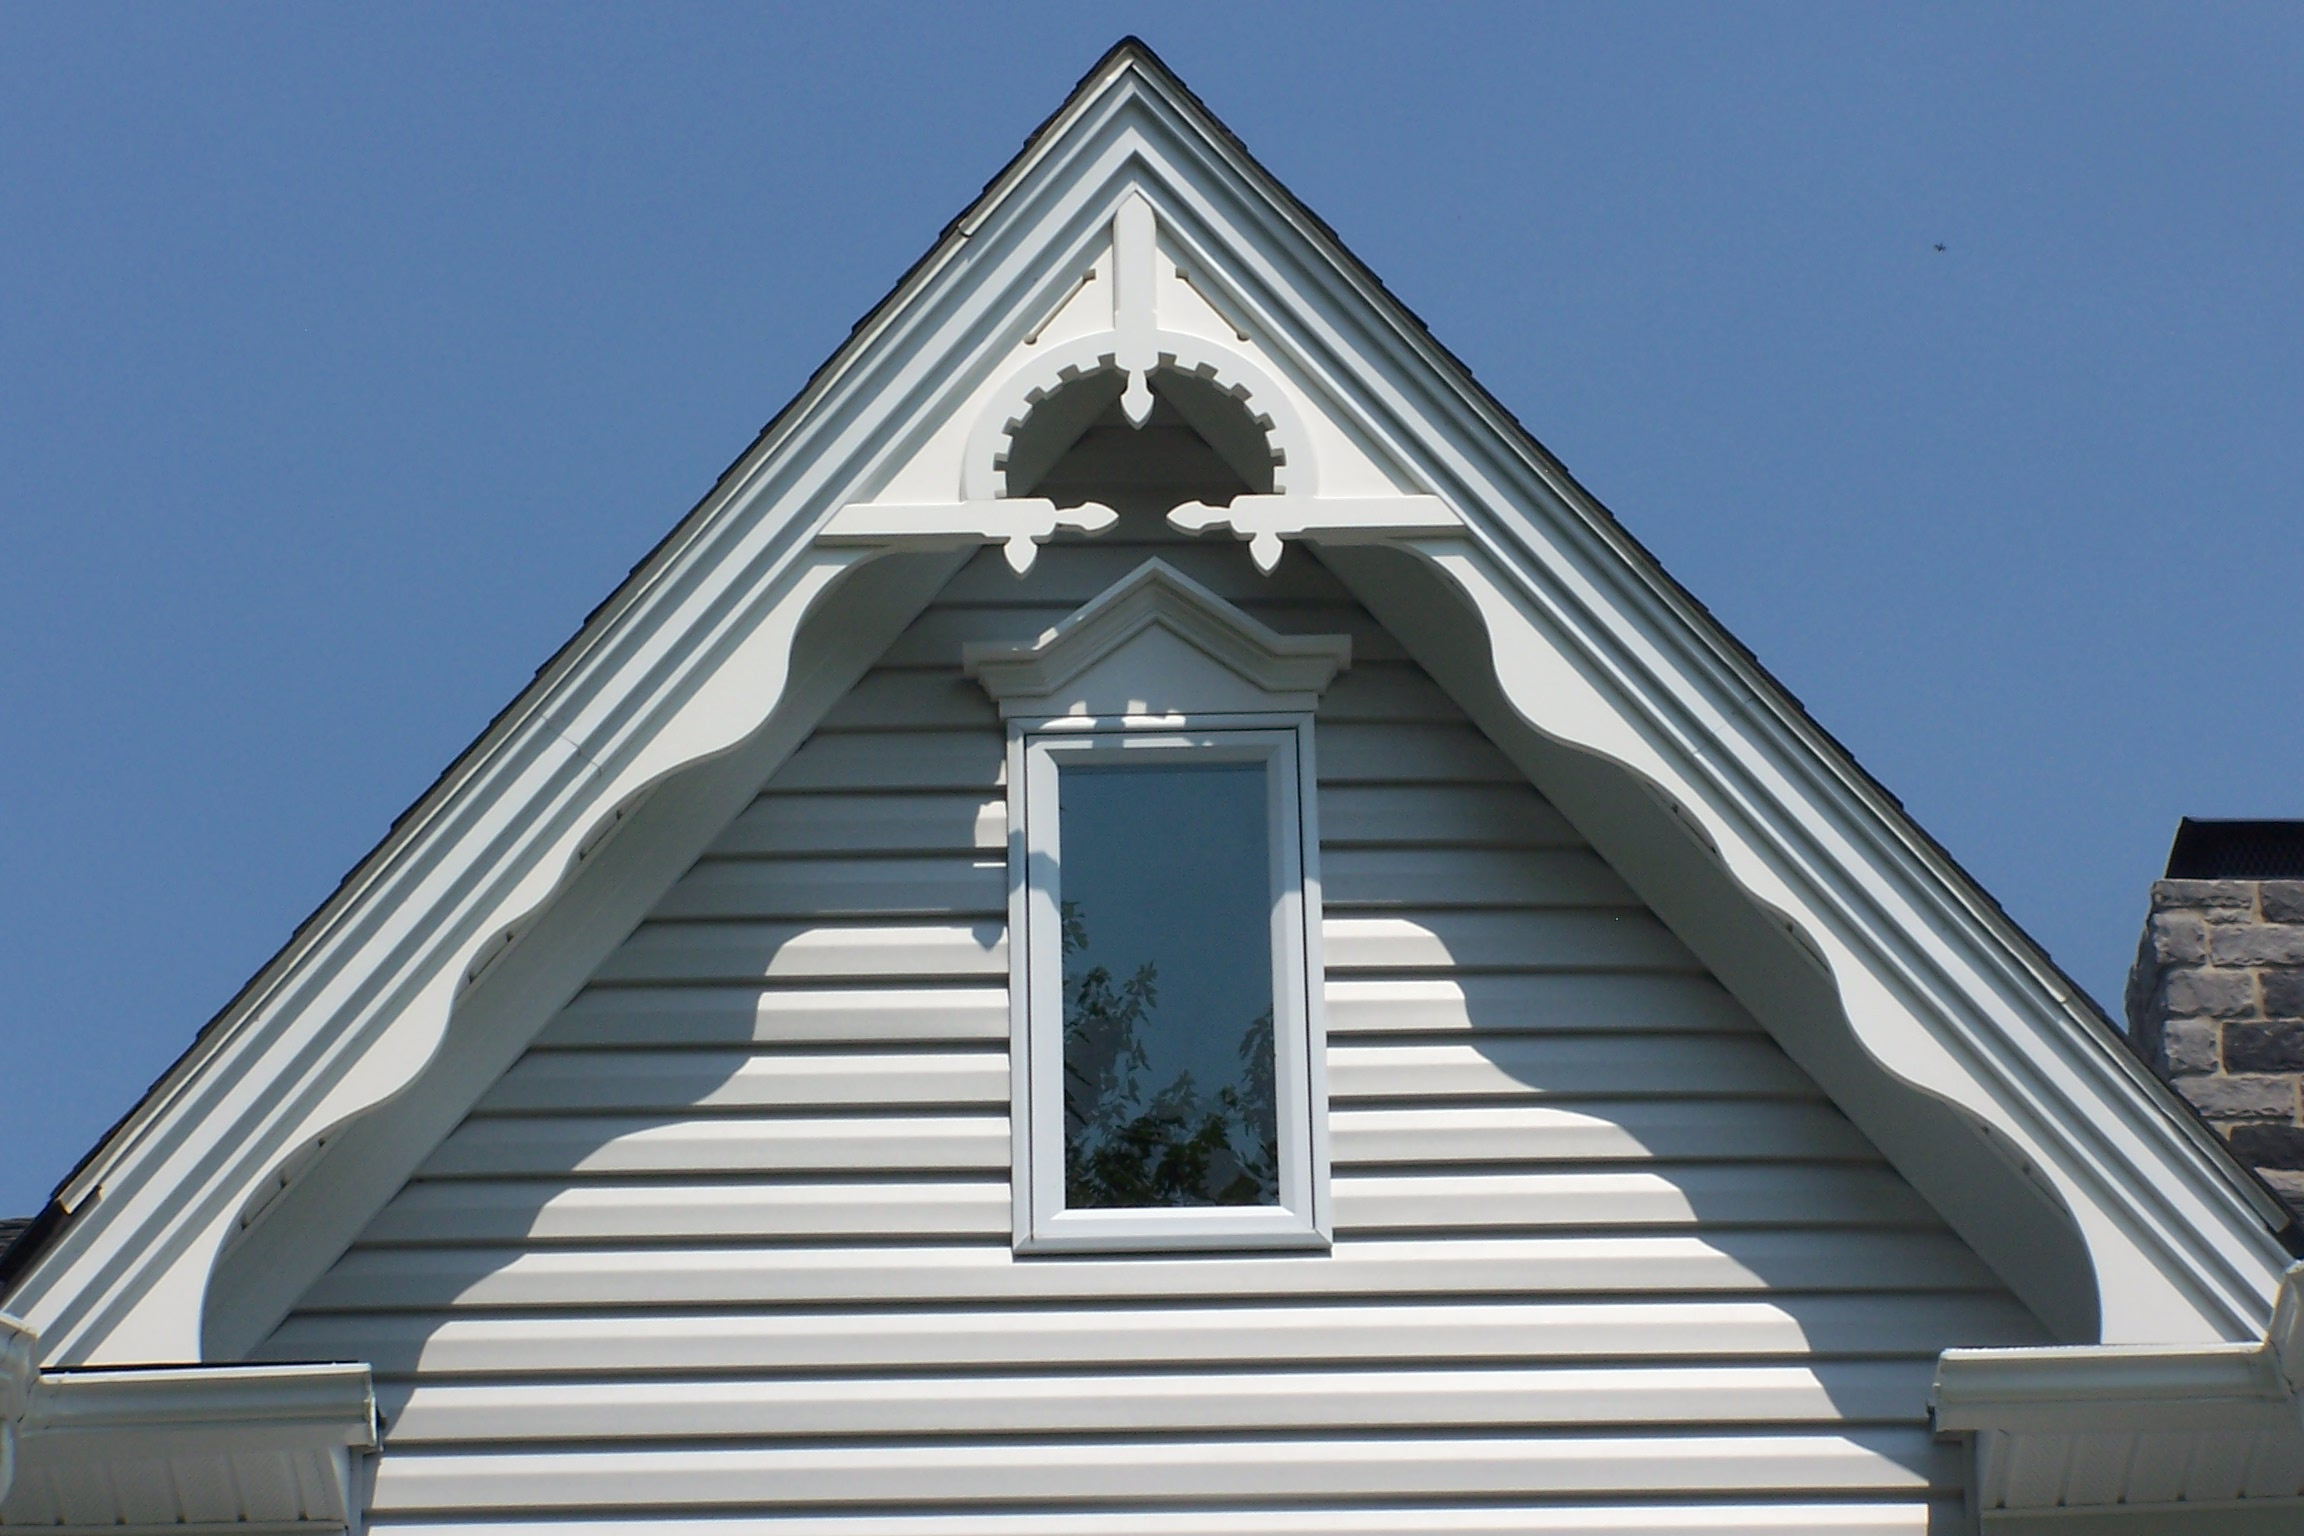 Customize your home with charming gingerbread trim for Architectural gingerbread trim